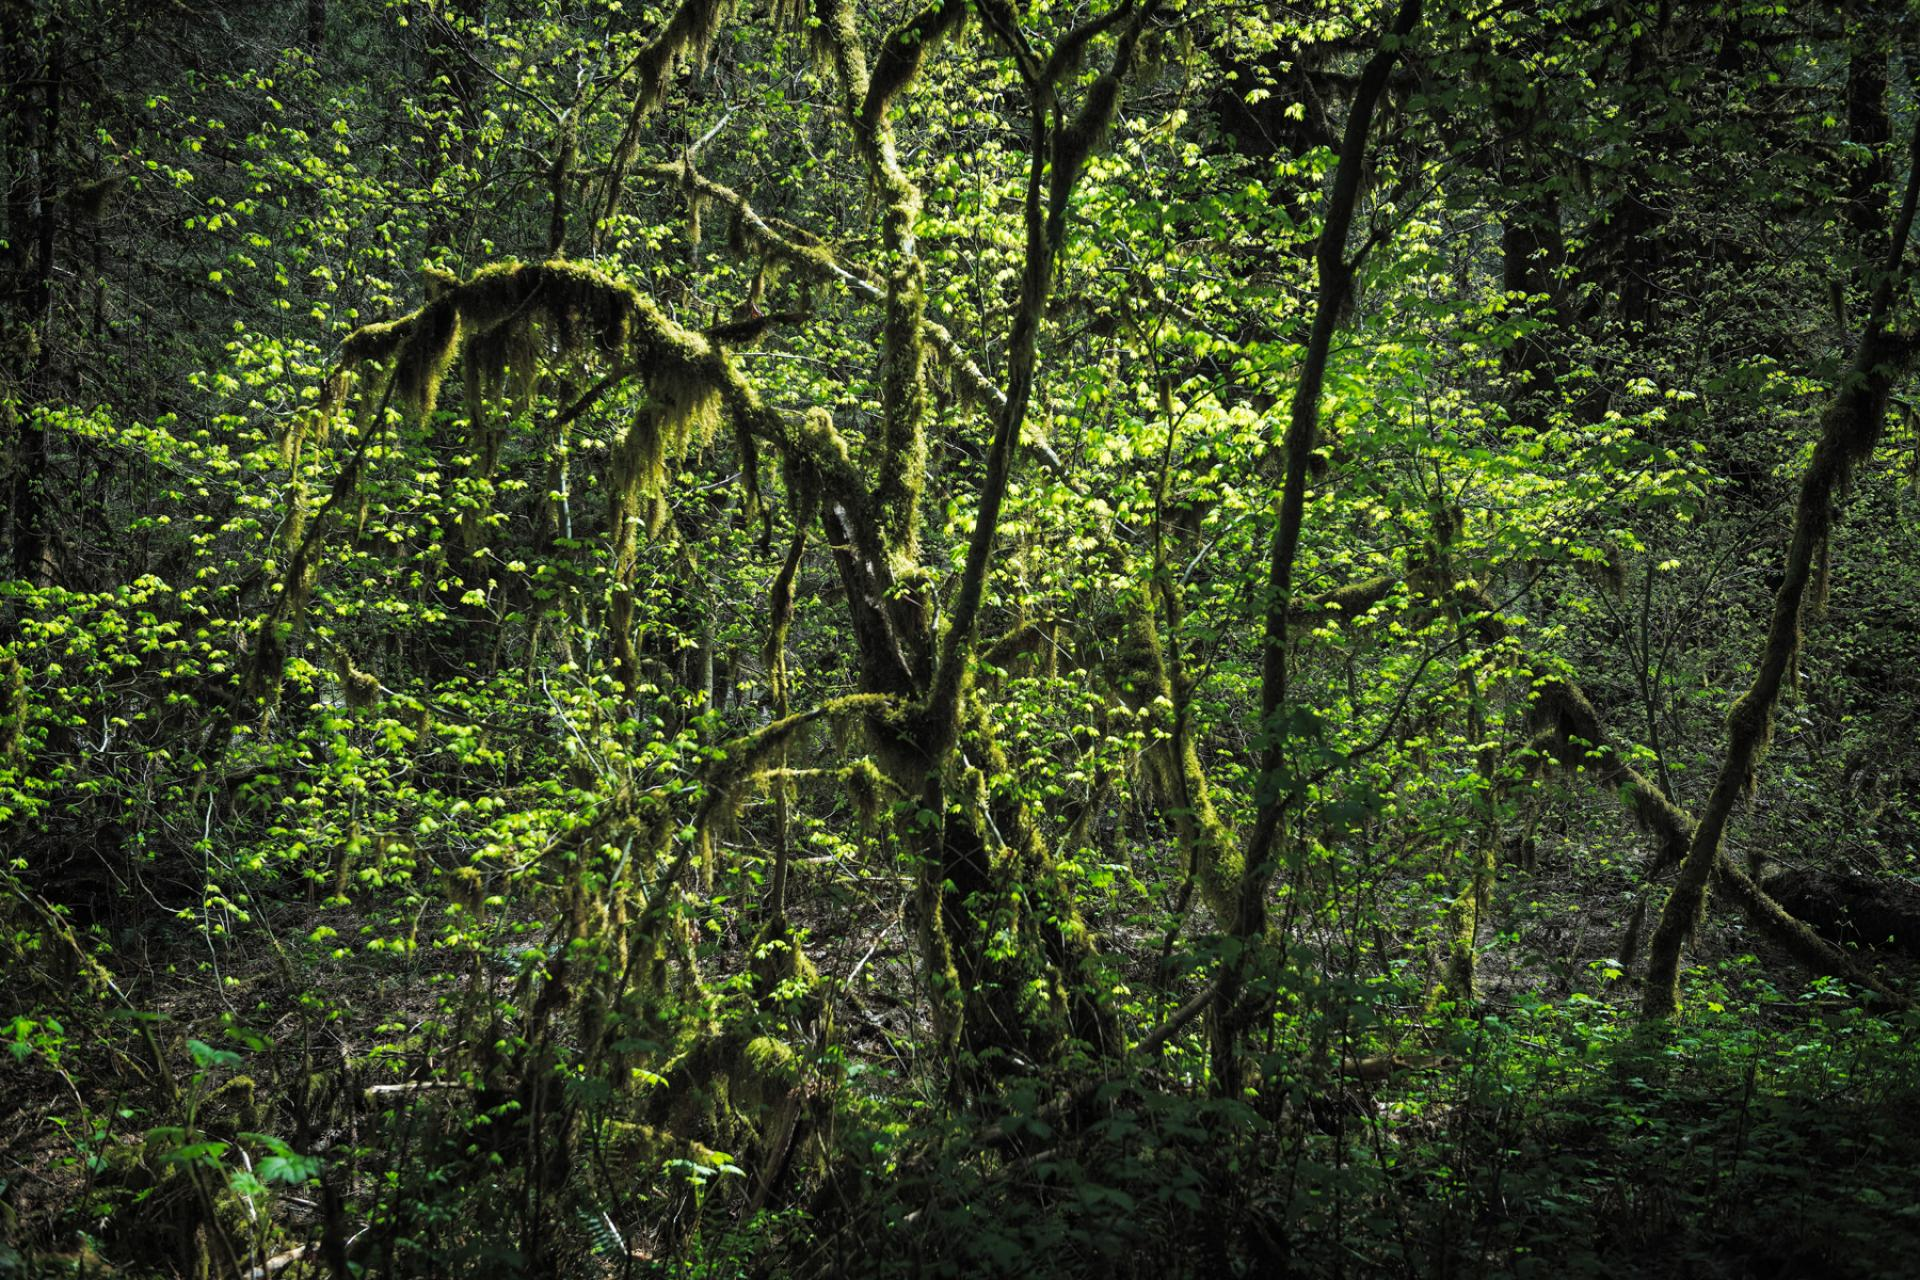 Close view of tangled green tree branches in Mt. Baker-Snoqualmie National Forest, Washington